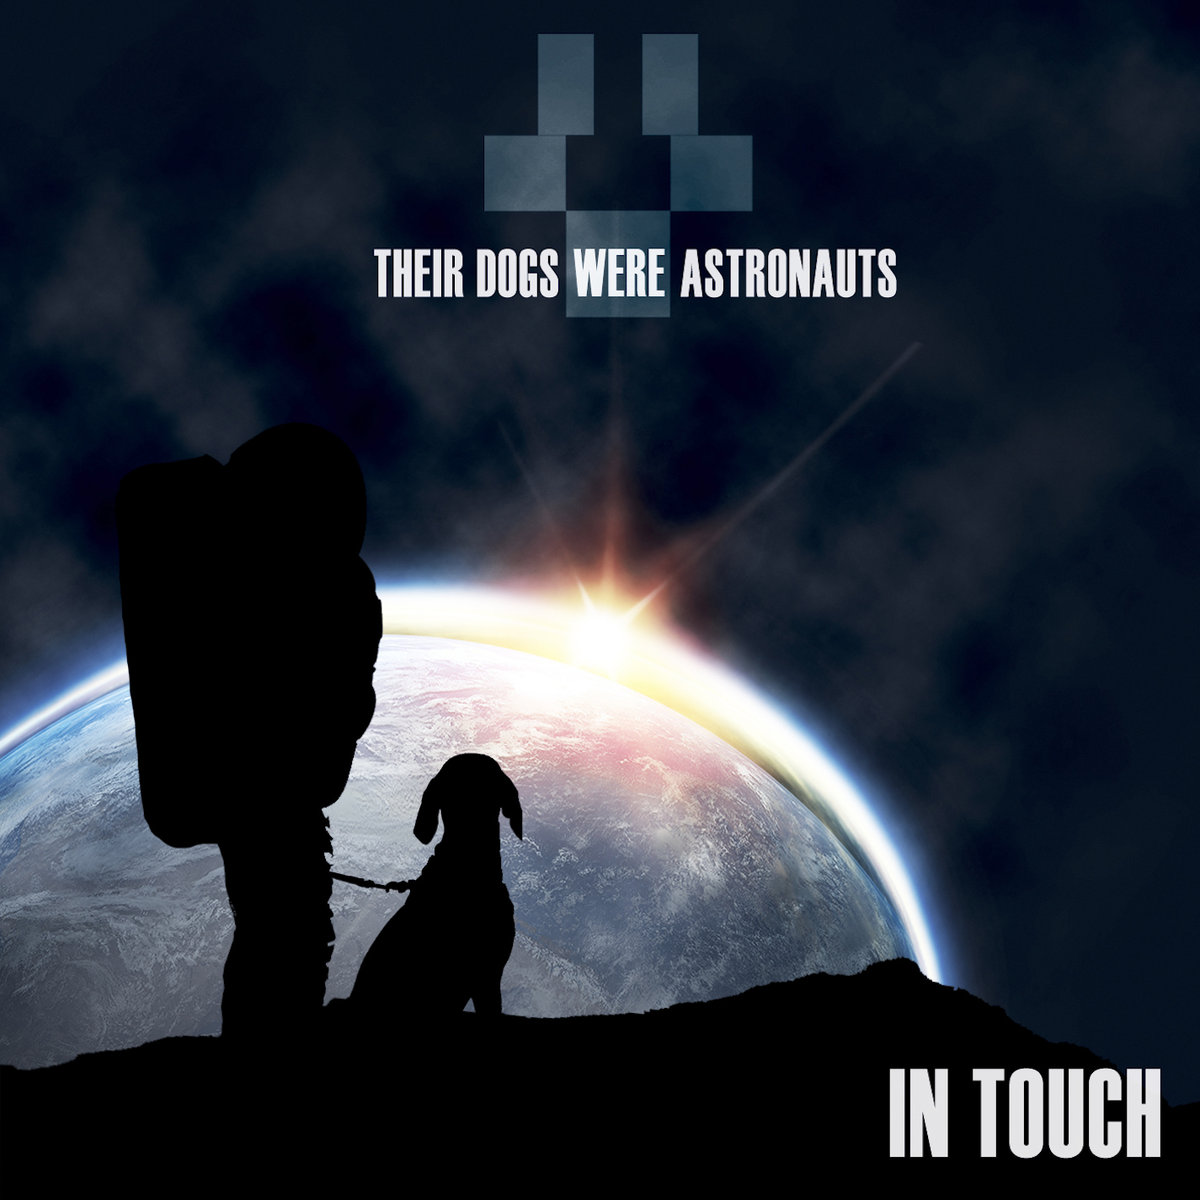 Their Dogs Were Astronauts - Jupiter @ 'In Touch' album (instrumental metal, metal)